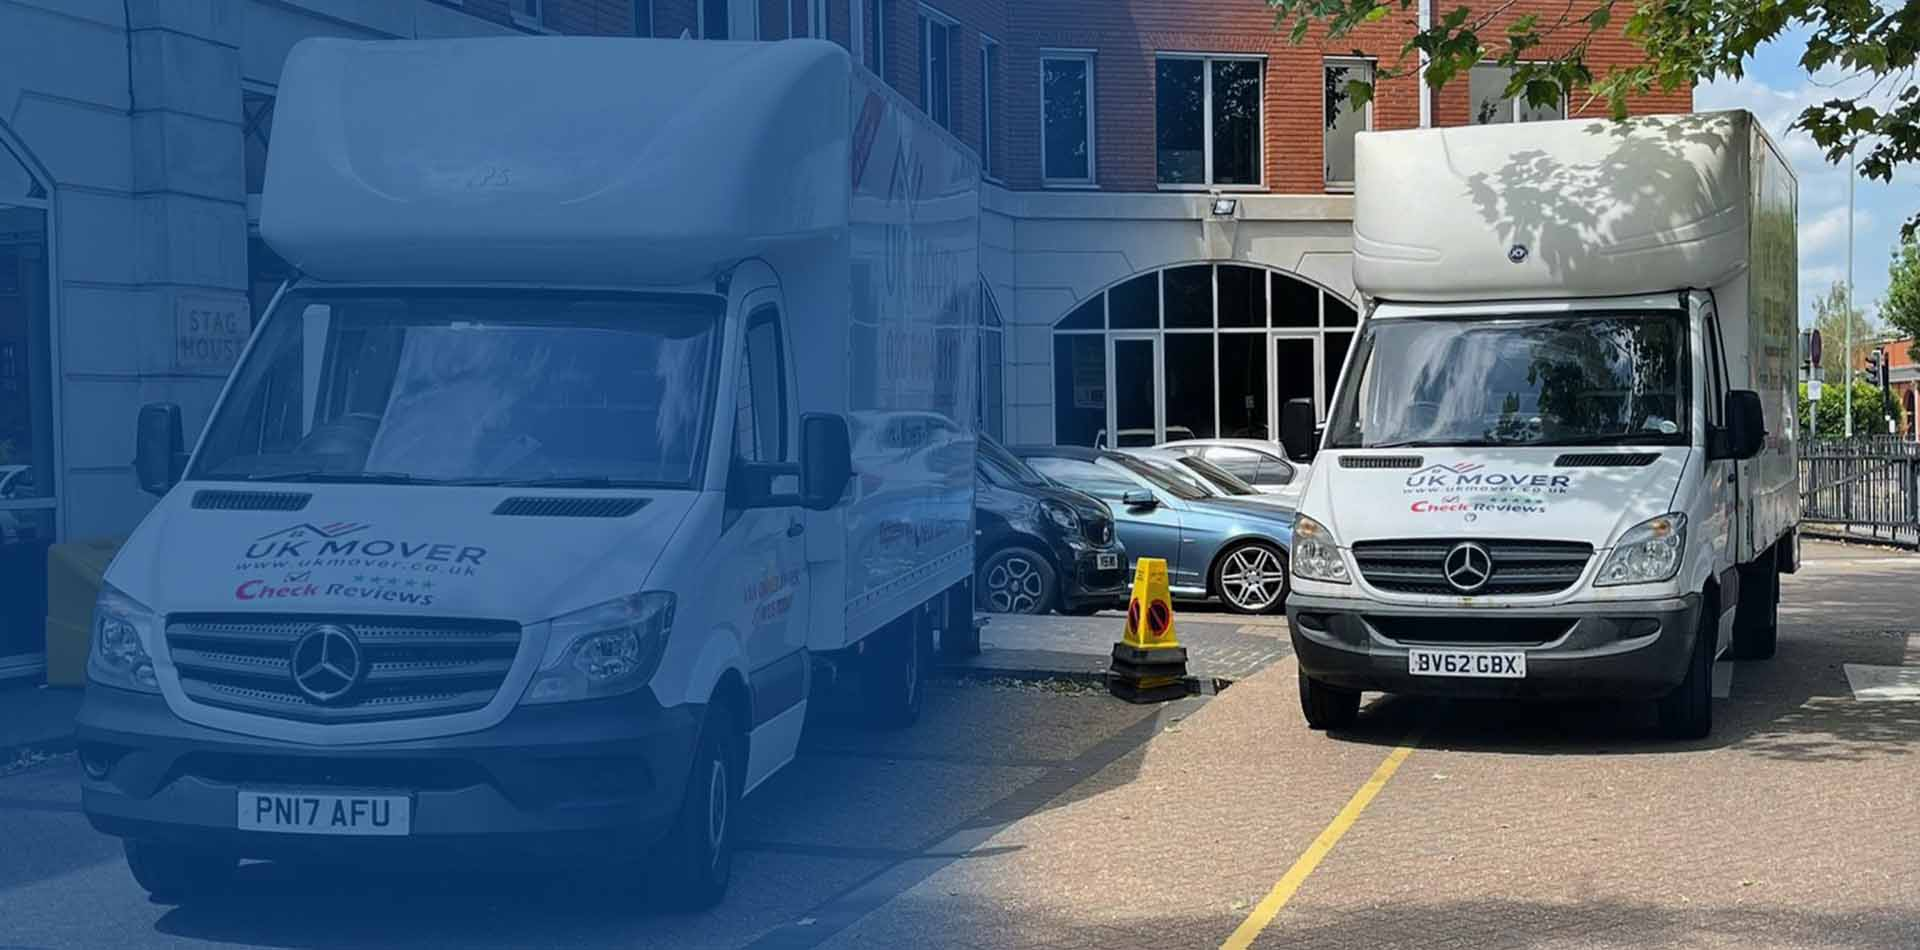 office removals services in london,uk